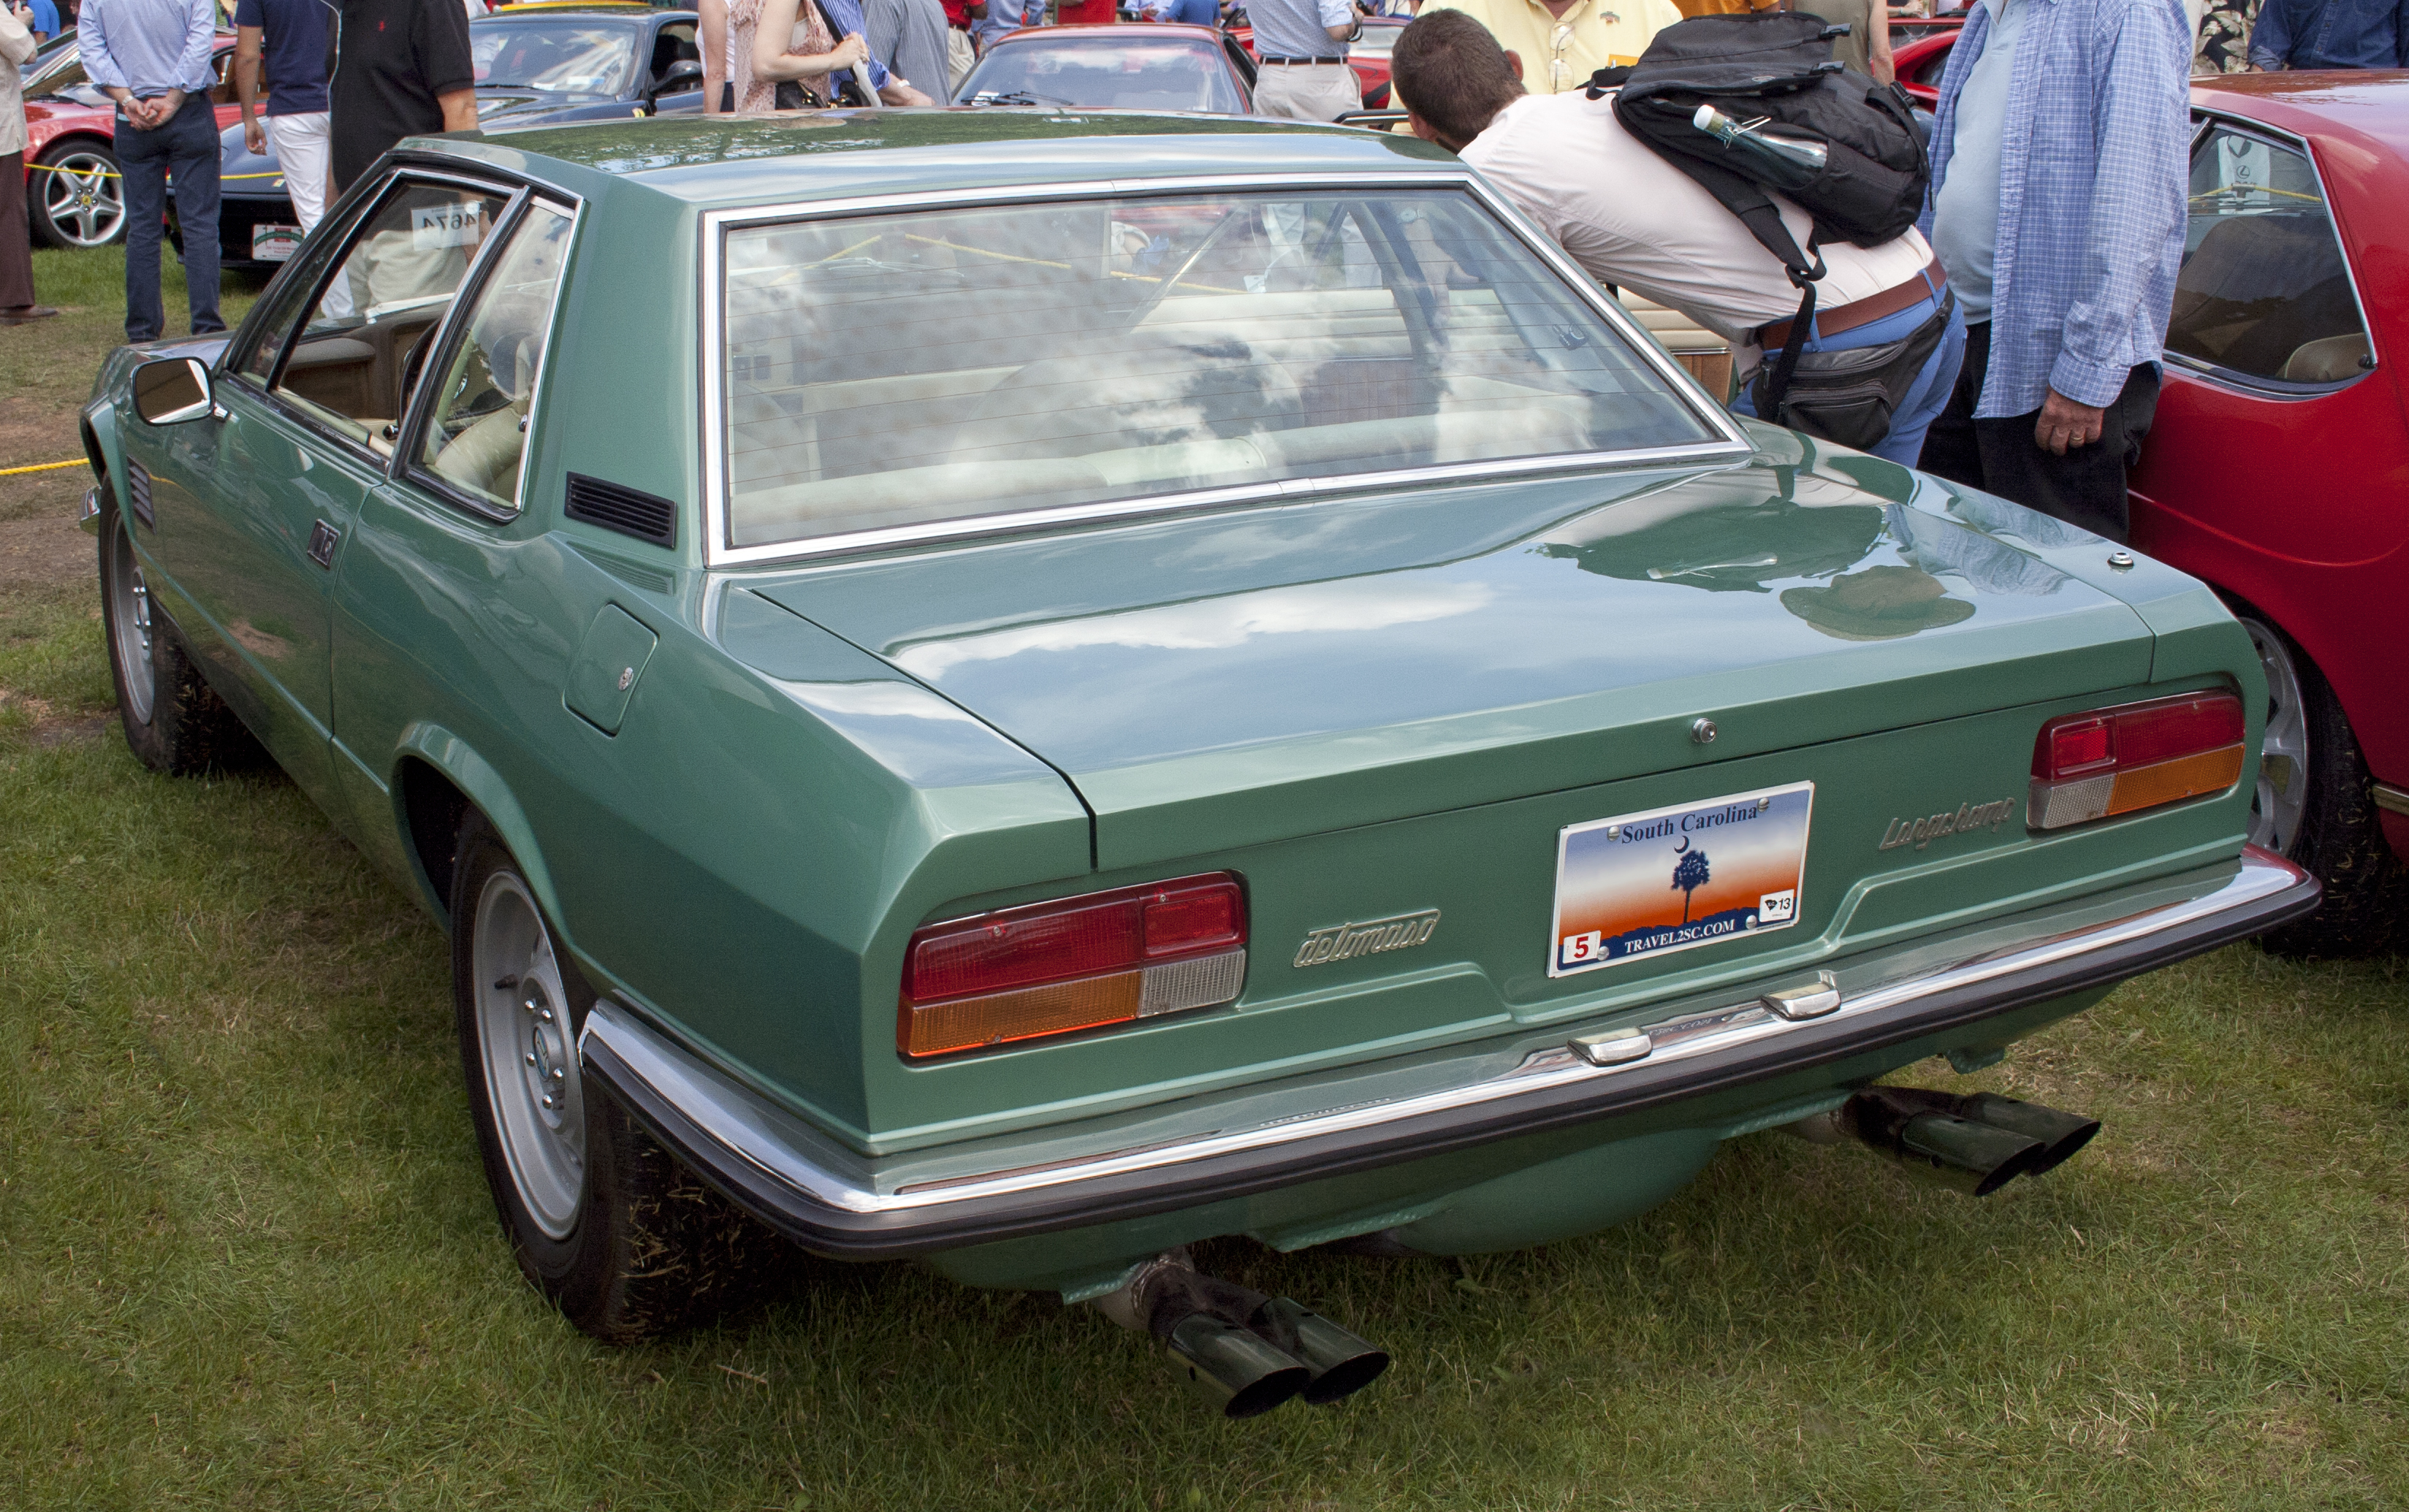 http://upload.wikimedia.org/wikipedia/commons/9/9e/1974_deTomaso_Longchamp_rear.jpg